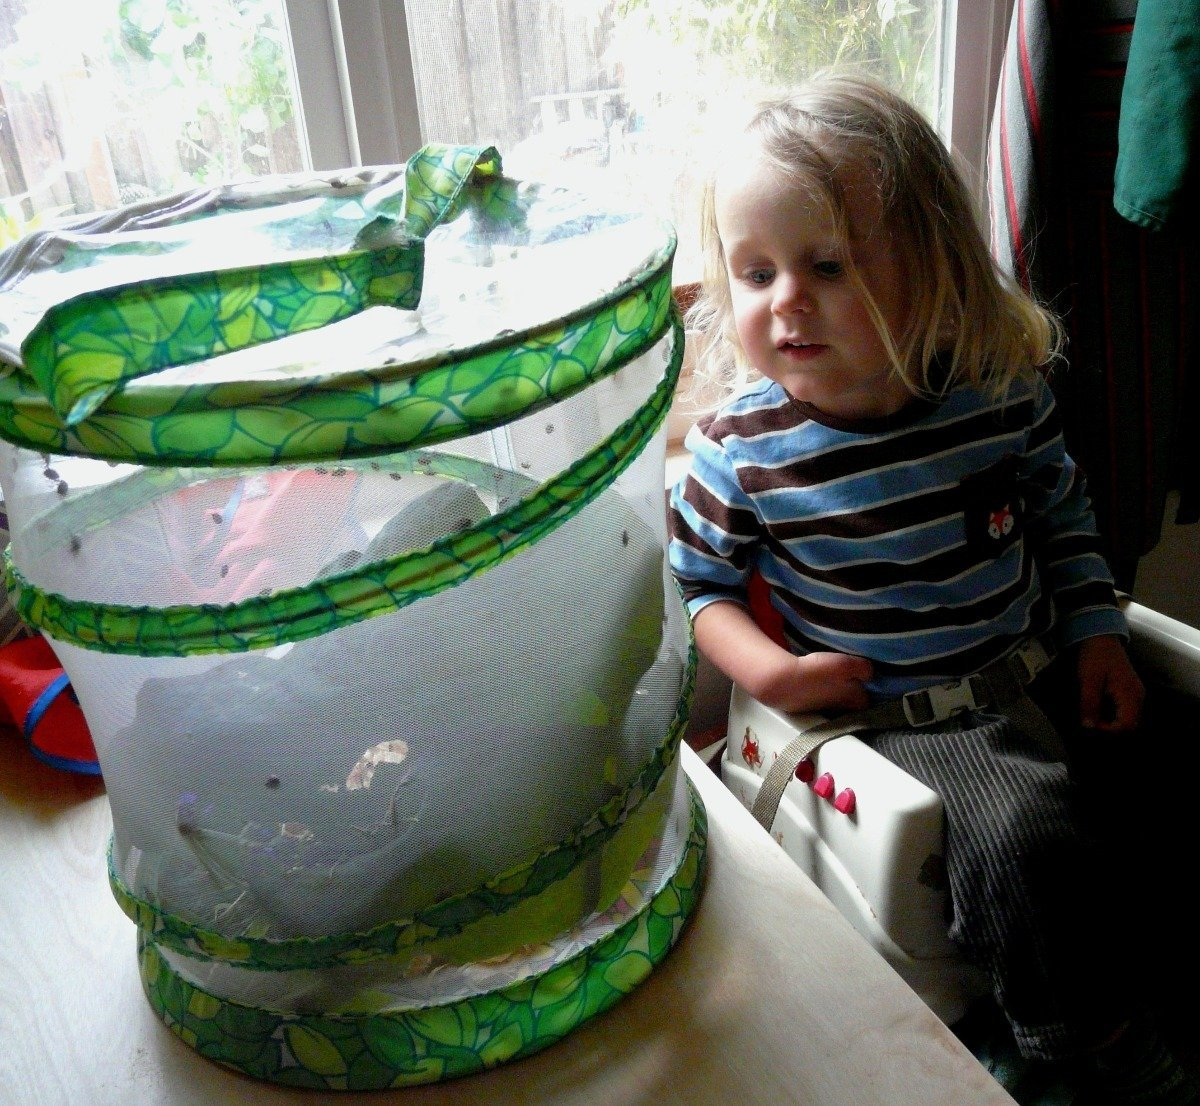 a child looks at a diy ladybug habitat